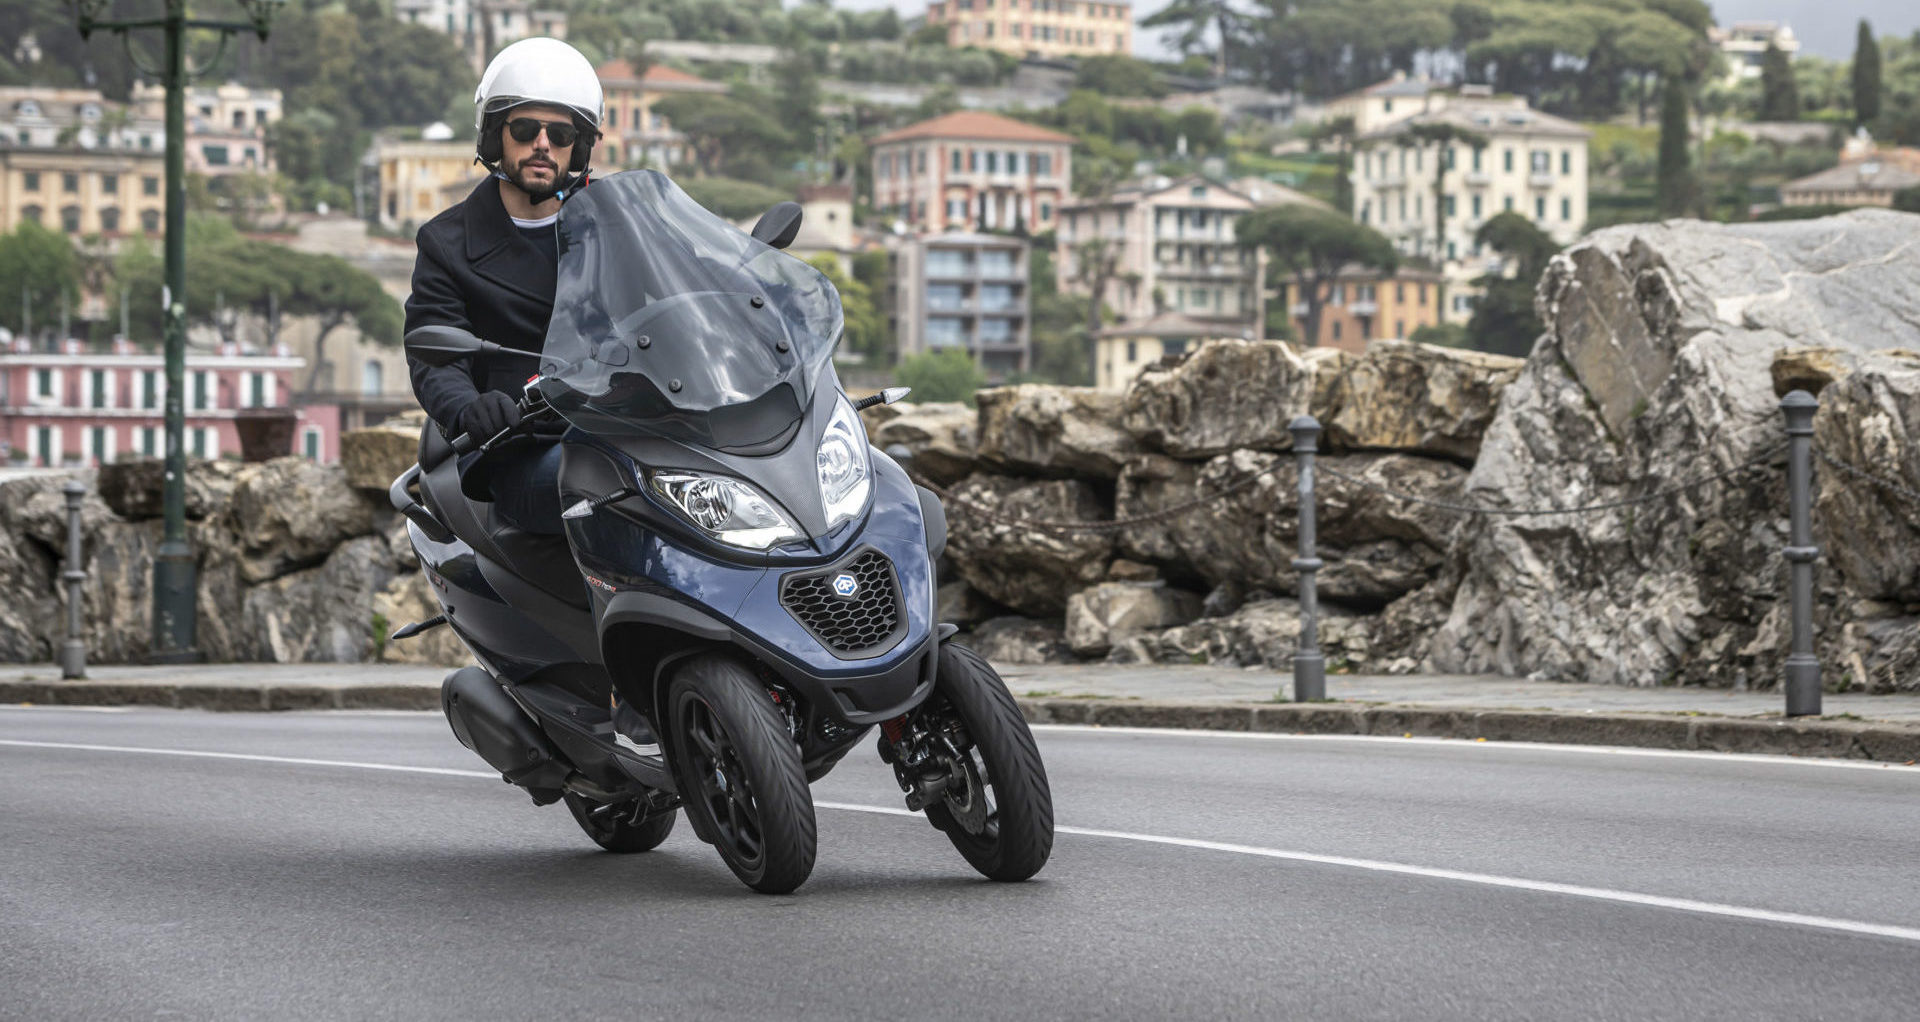 A Piaggio MP3 three-wheel scooter, which has a patented front wheel tilting system. Photo courtesy Piaggio Group.